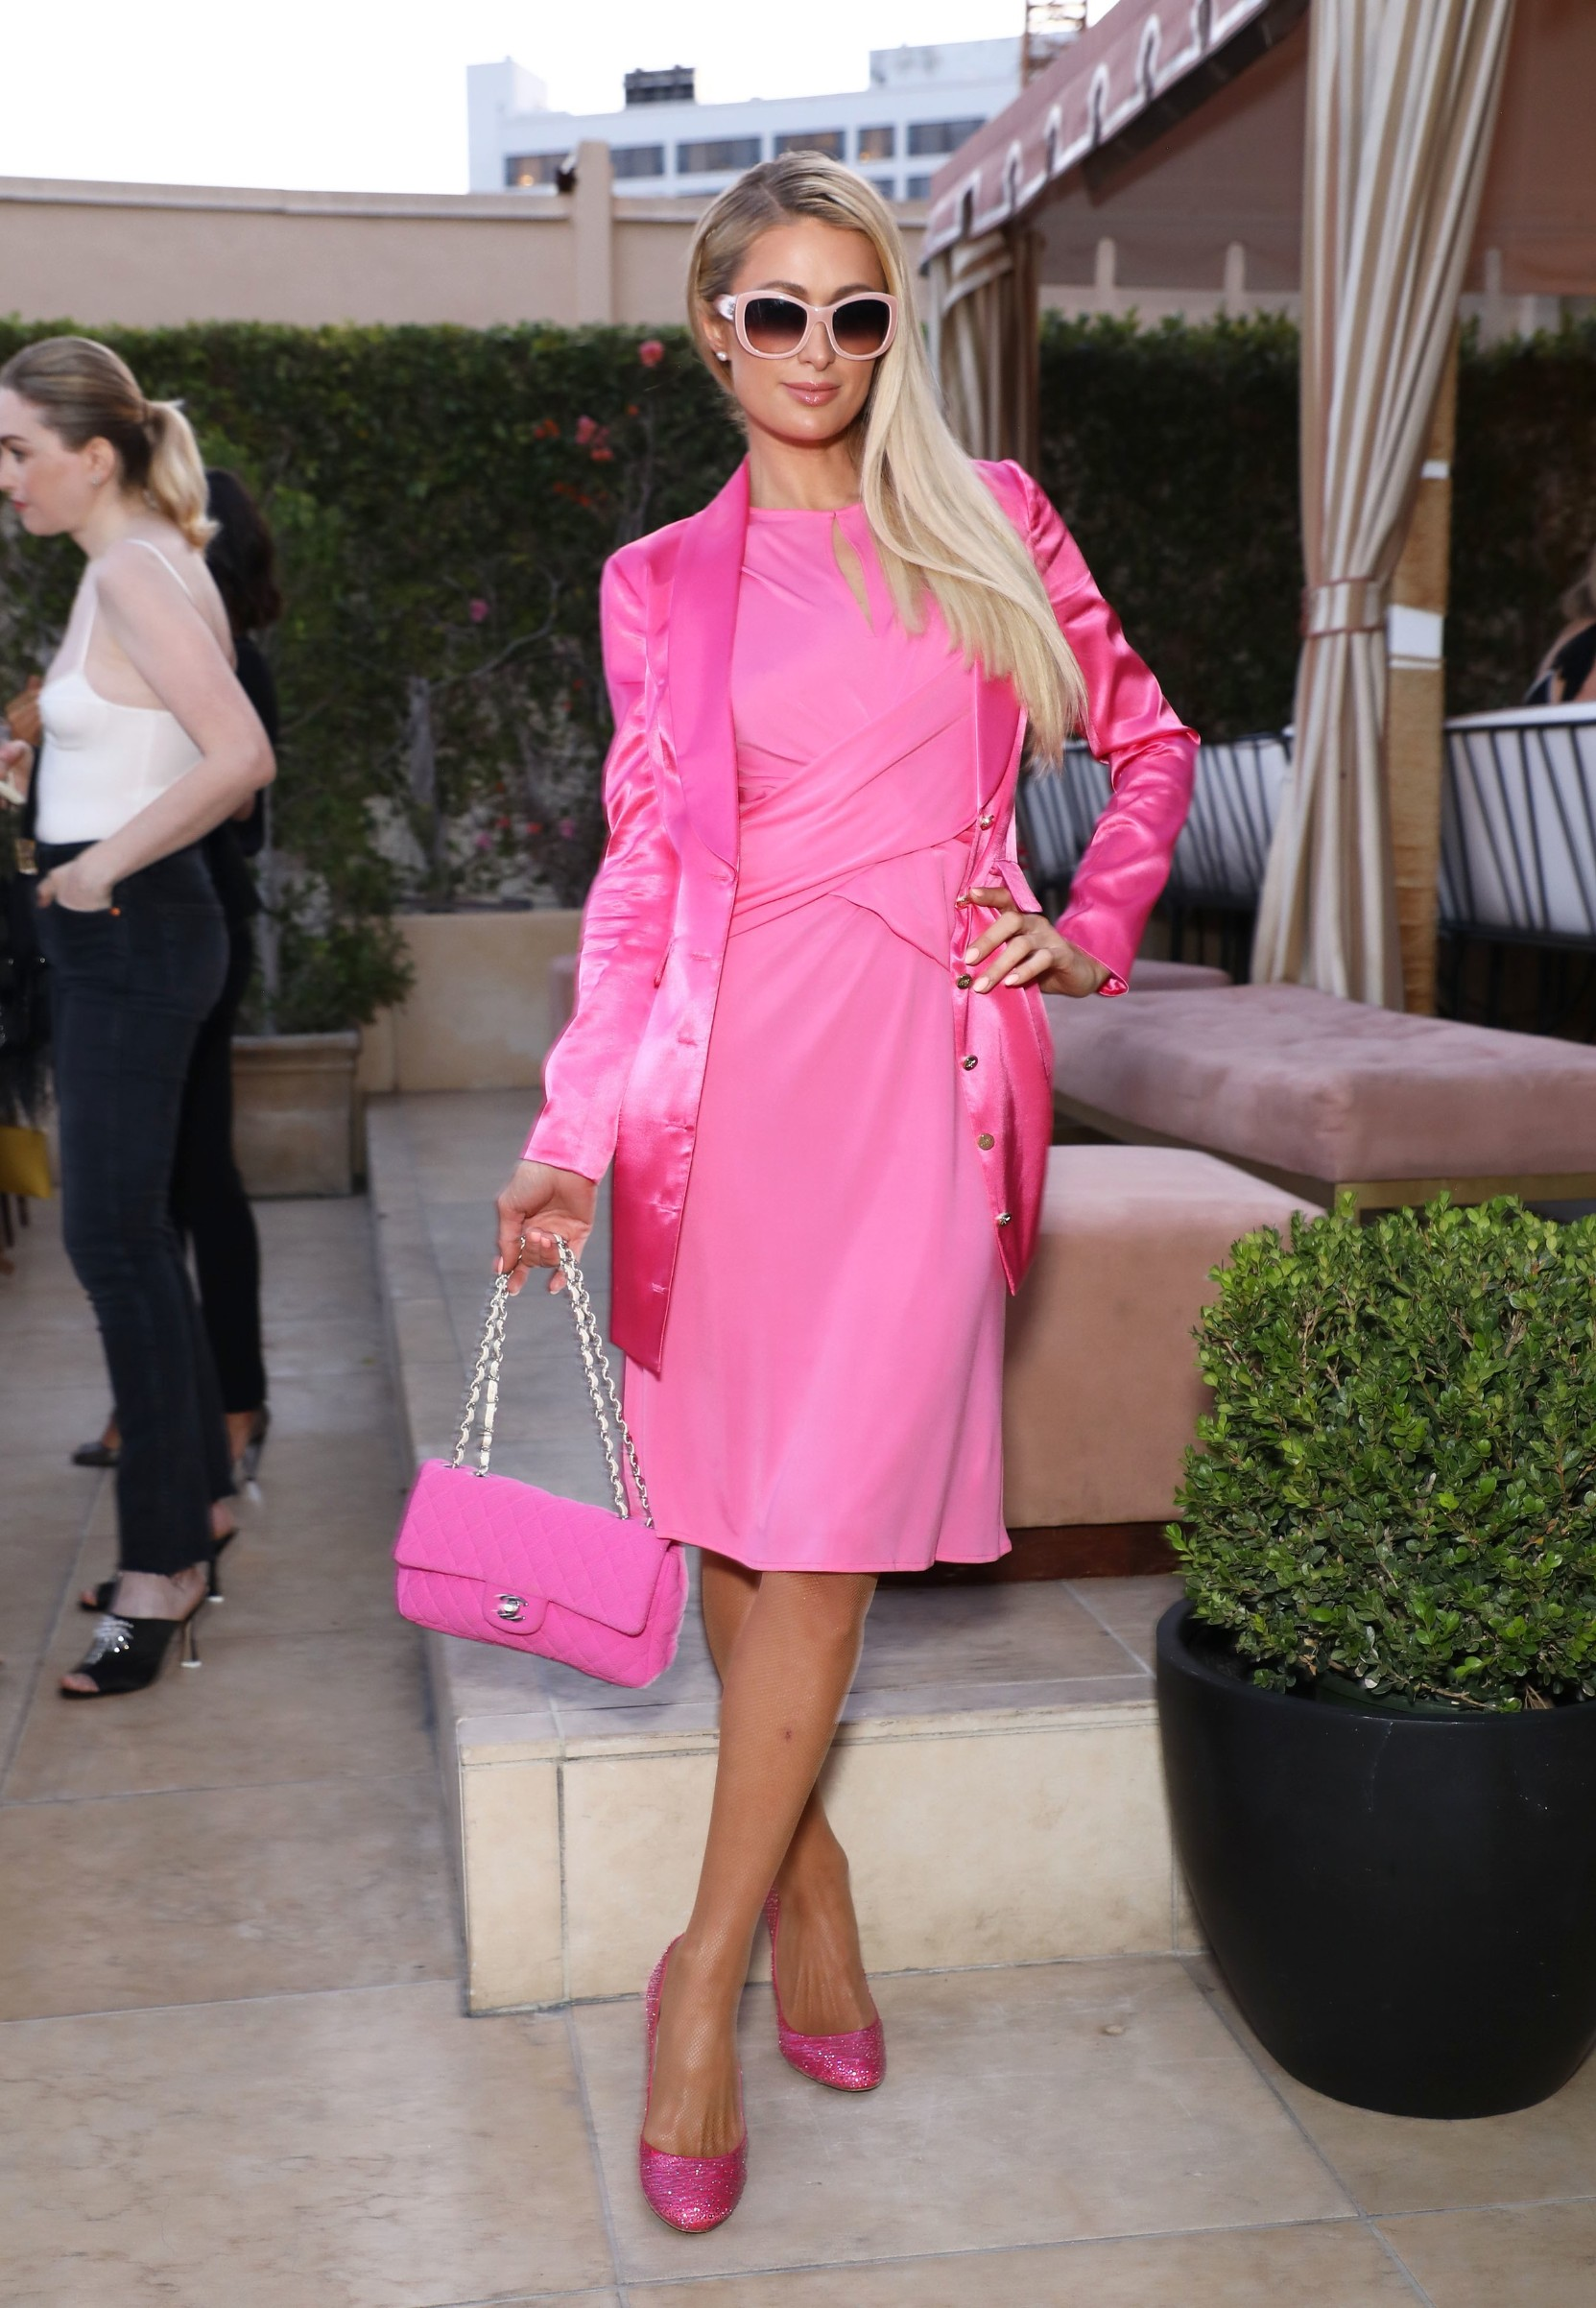 Paris Hilton Rumer Willis hosts Dinner Party for Cindy Eckert's Right To Desire Campaign, Sunset Tower Hotel, Los Angeles, USA - 07 Aug 2019,Image: 463225451, License: Rights-managed, Restrictions: , Model Release: no, Credit line: Sara Jaye Weiss / Shutterstock Editorial / Profimedia